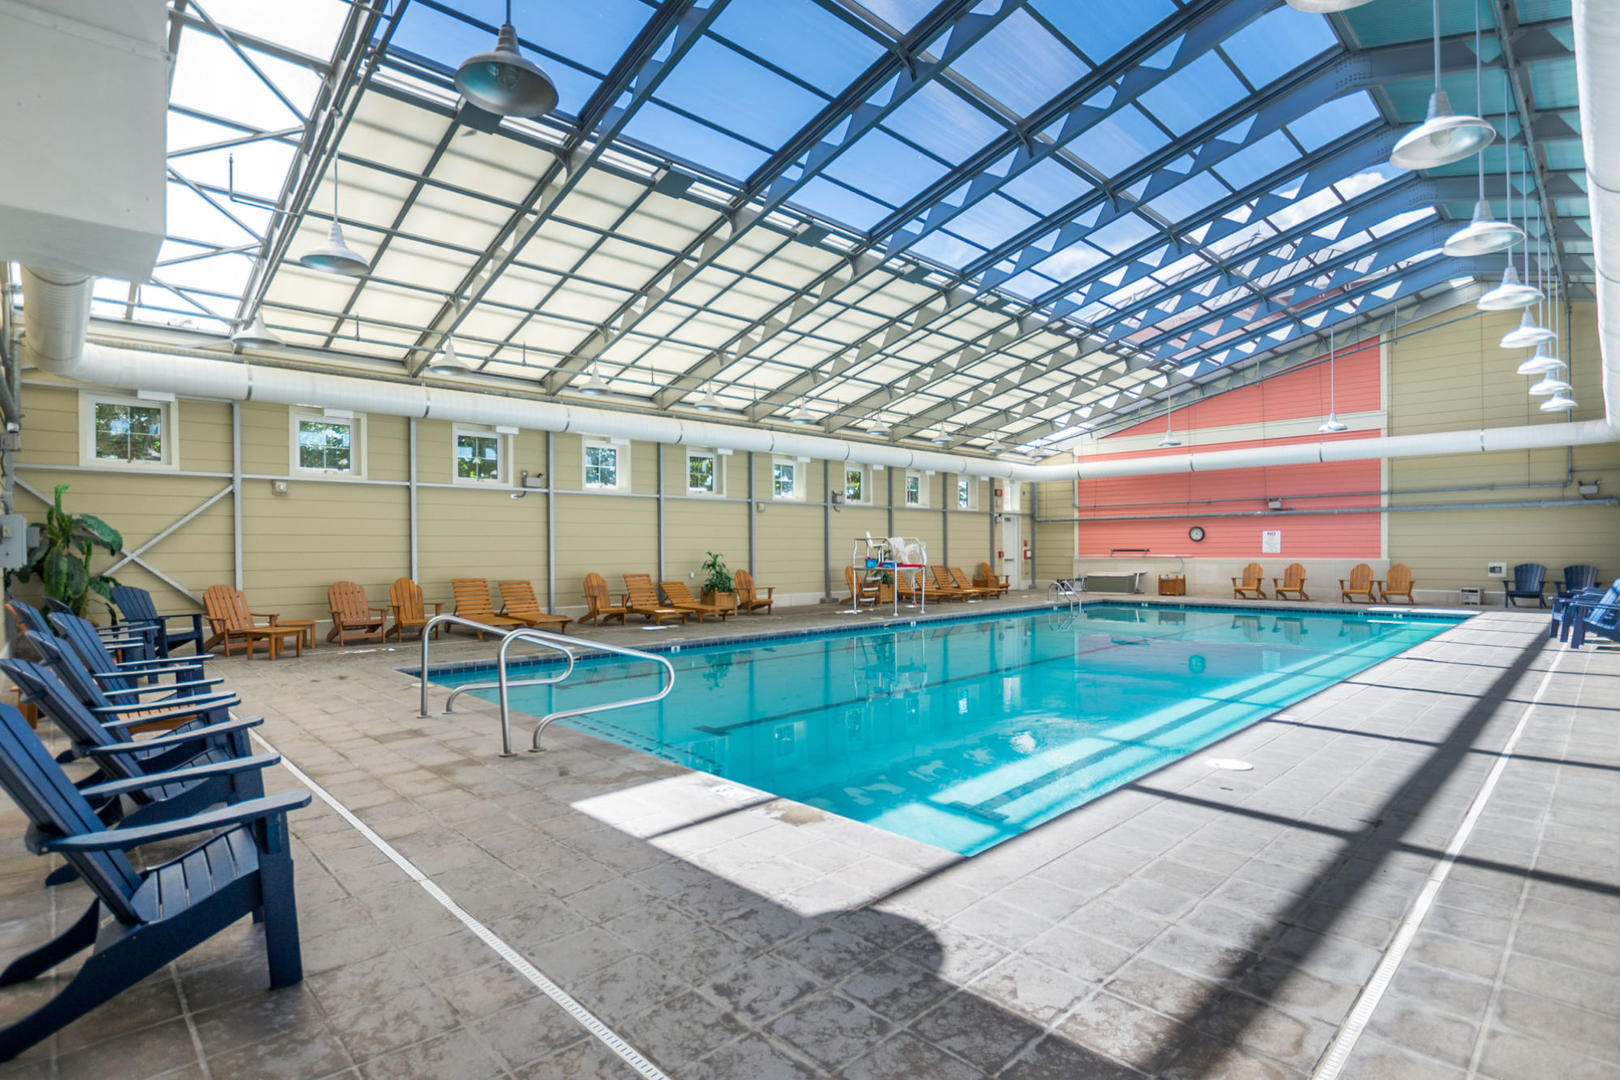 Sunset Island Indoor Pool